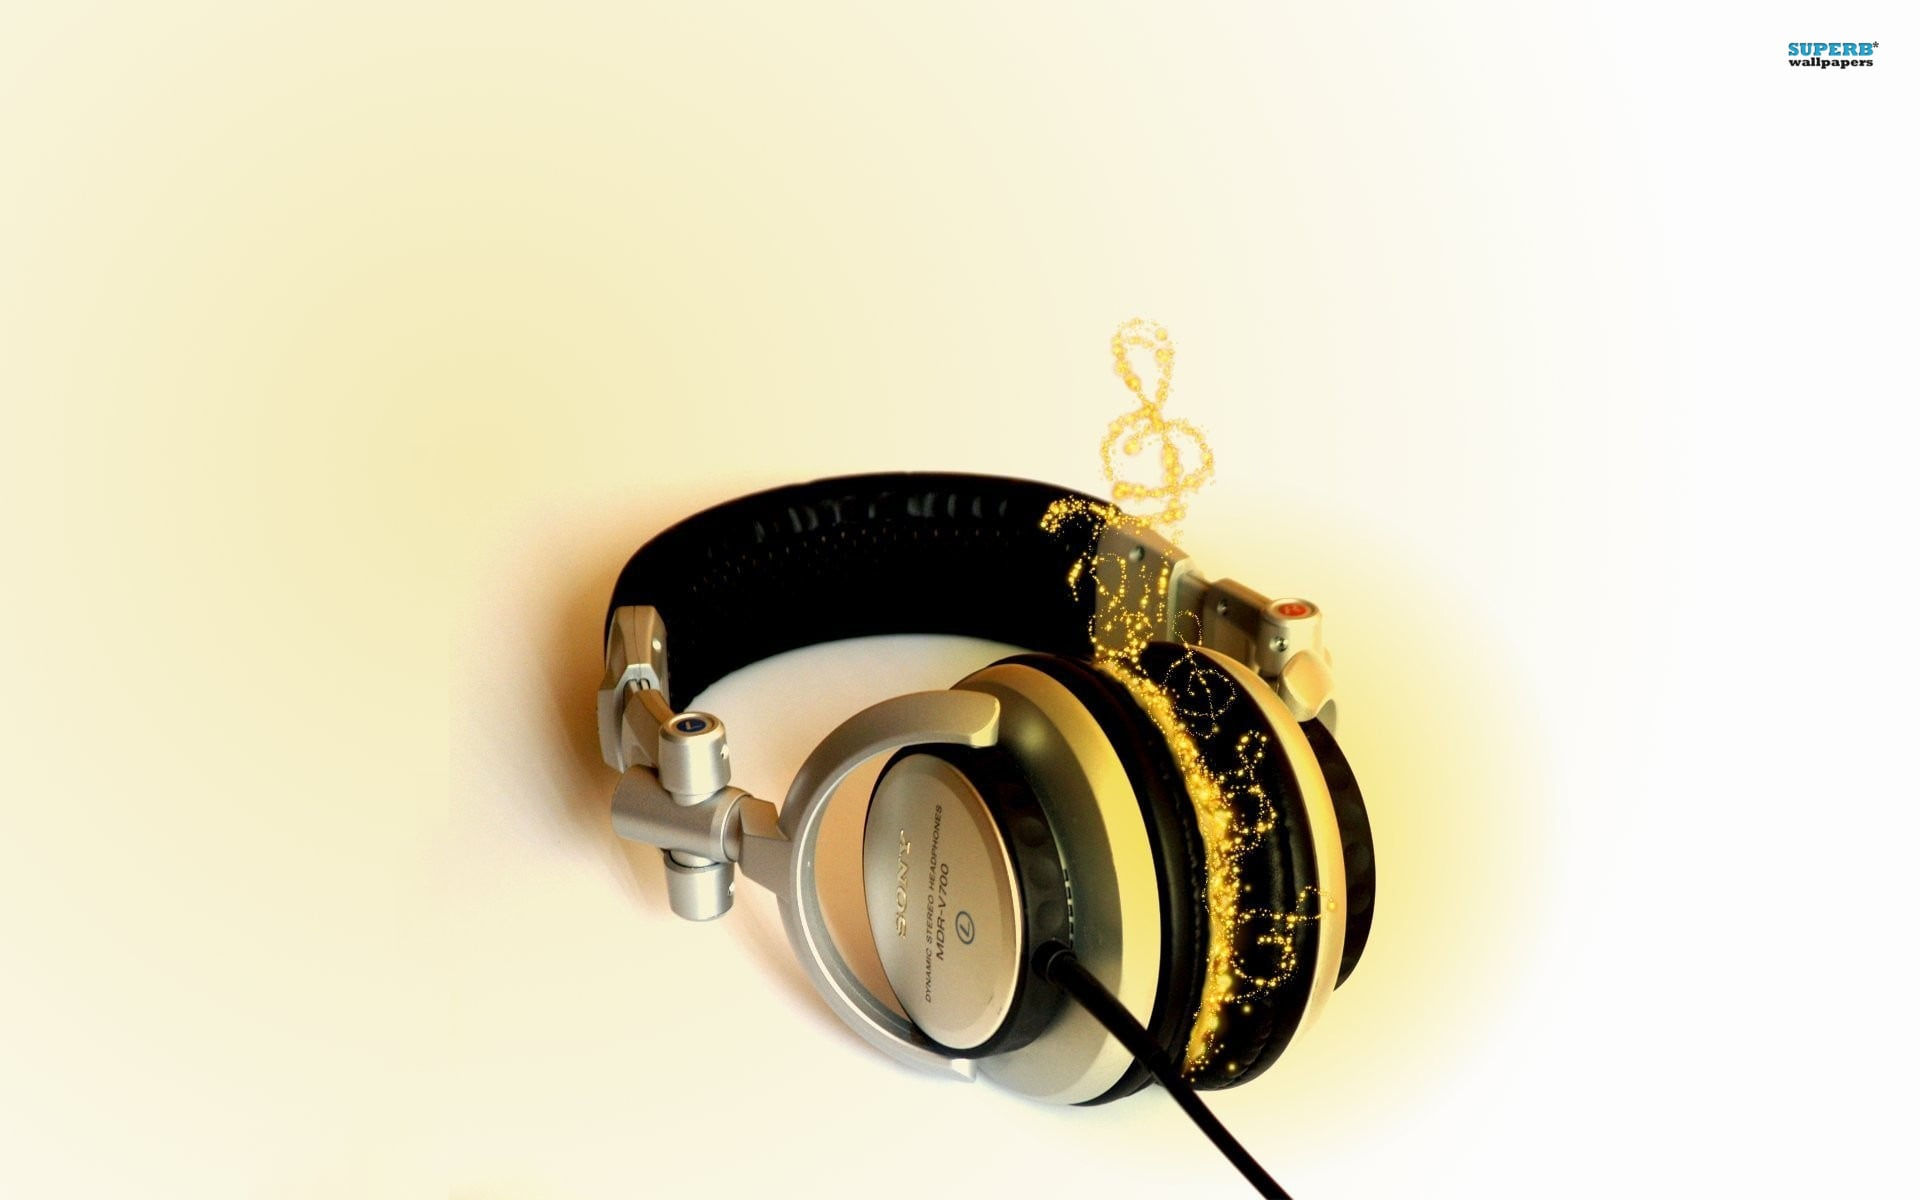 17+ AKG Headphones HD wallpapers free Download